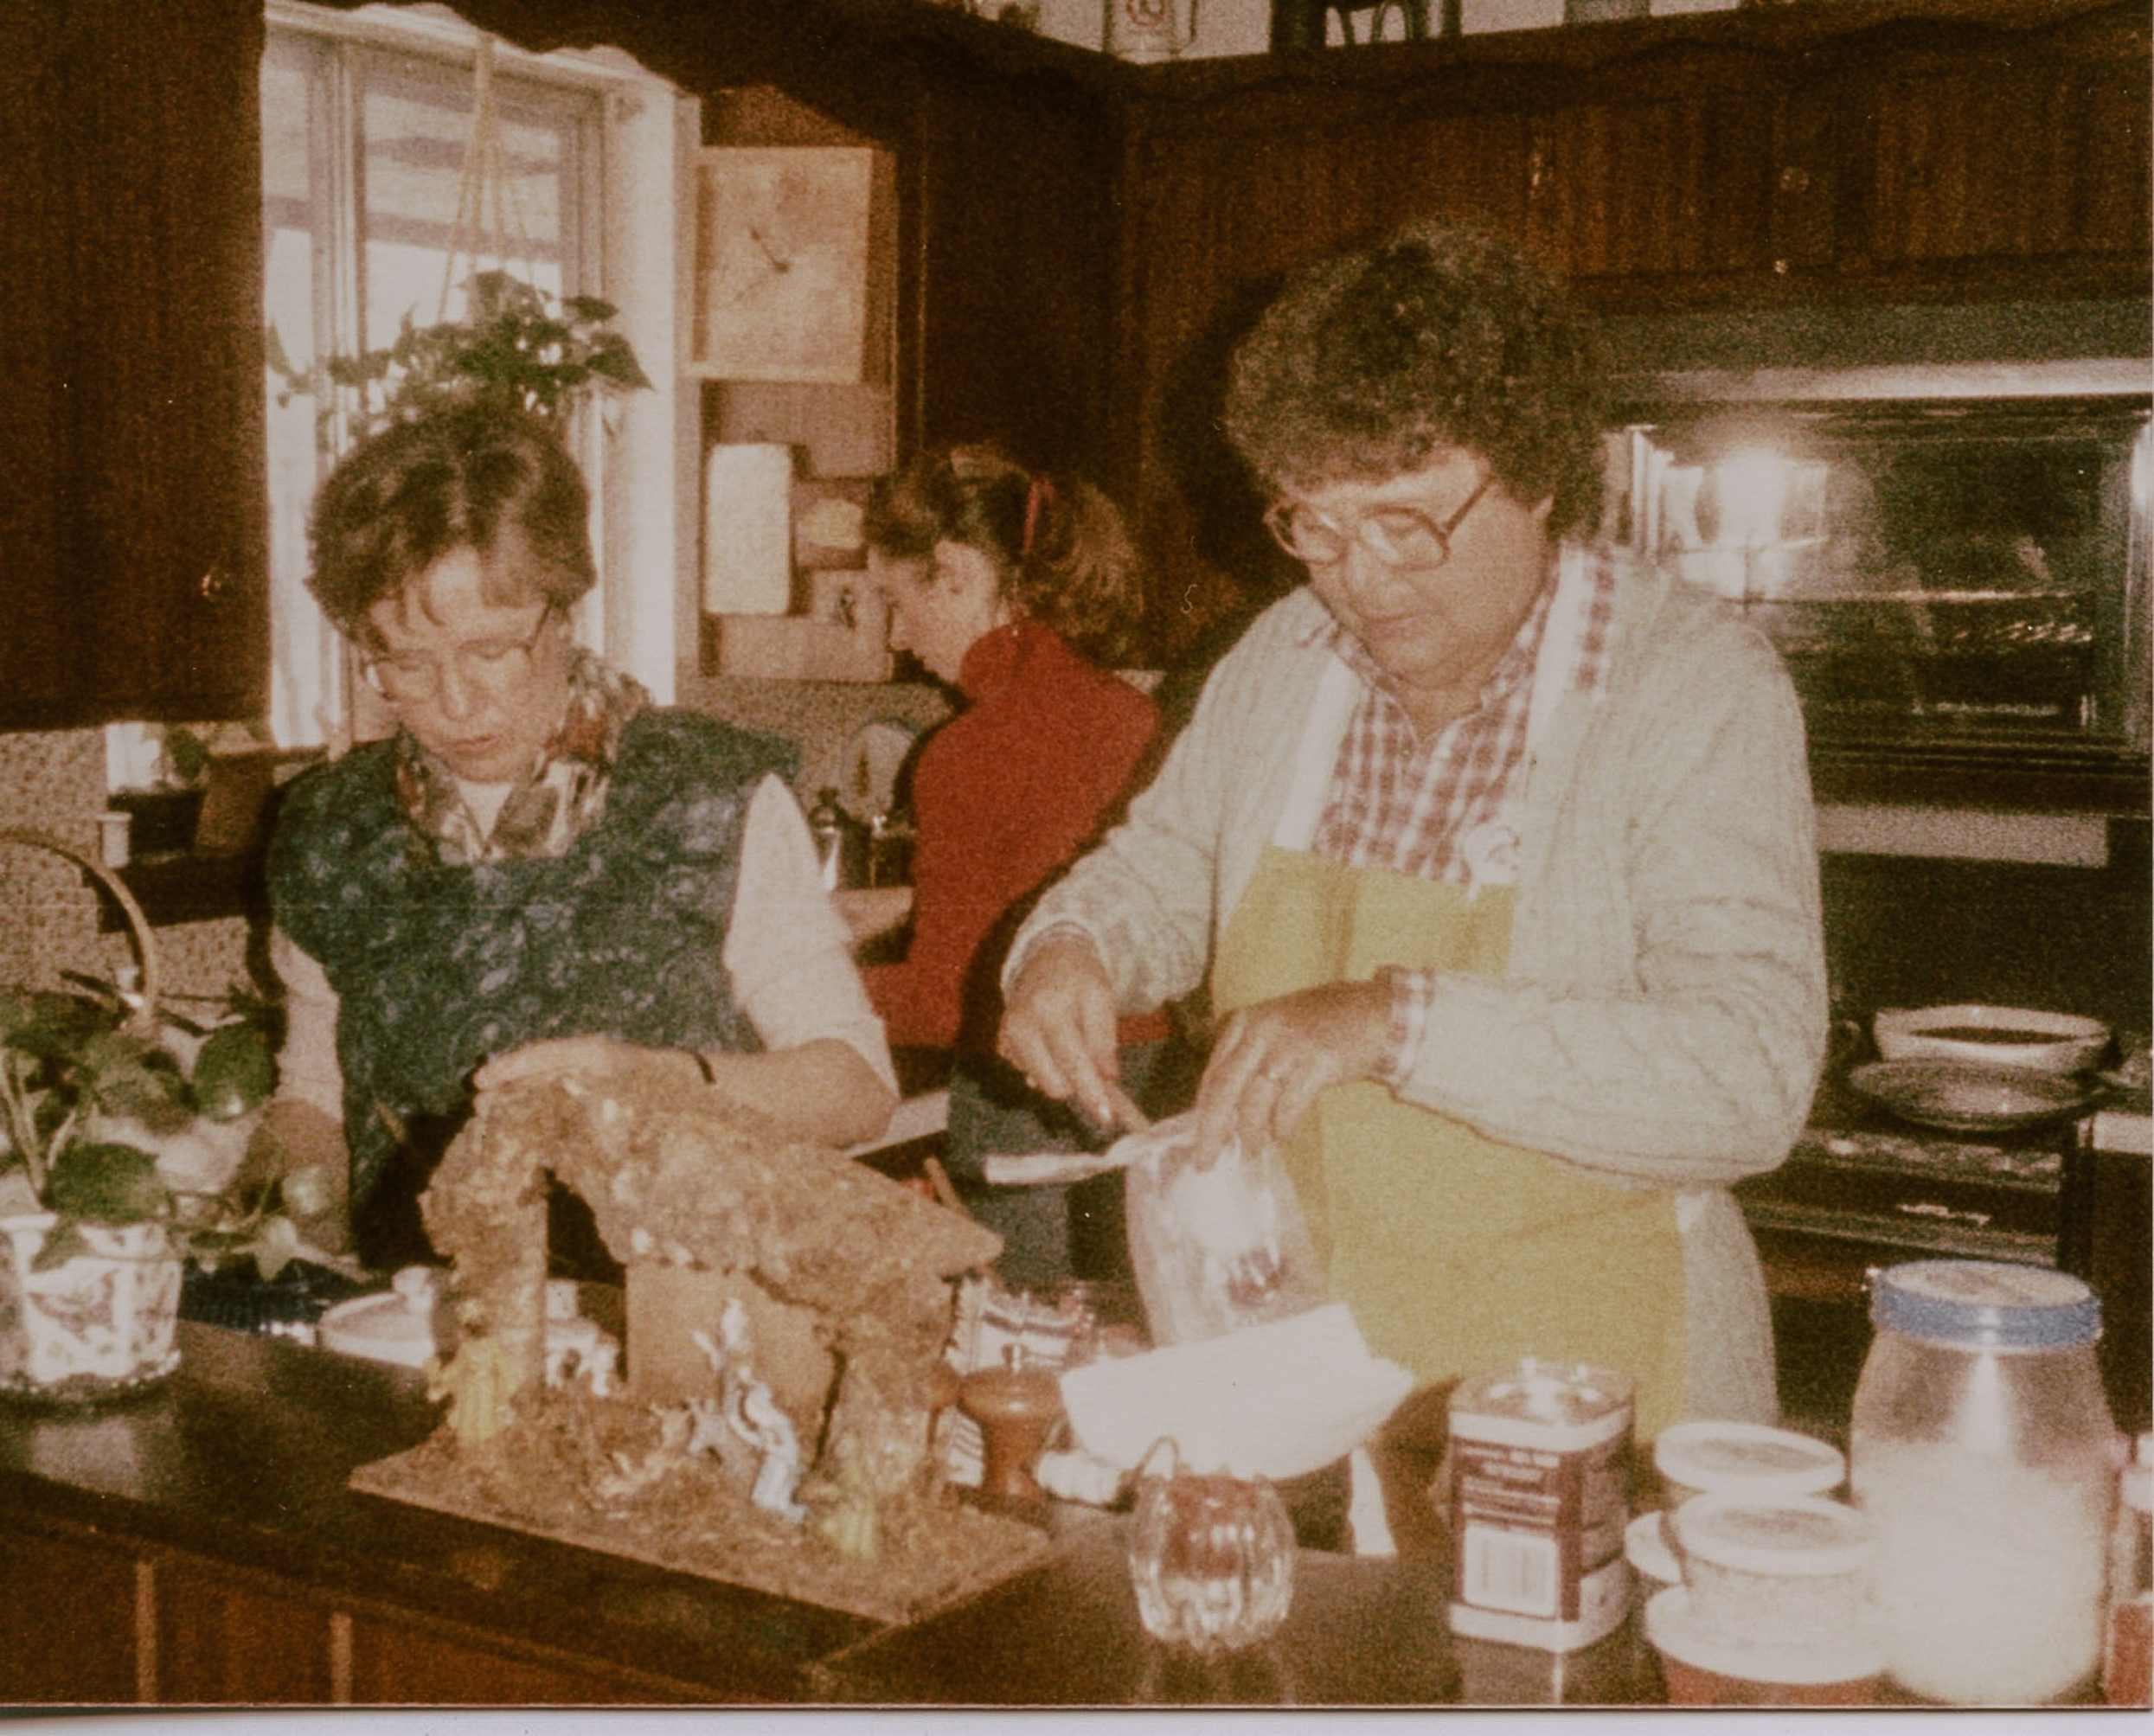 The two women who started it all. My mother, Virginia and her best friend, Evelyn. Circa 1980s.